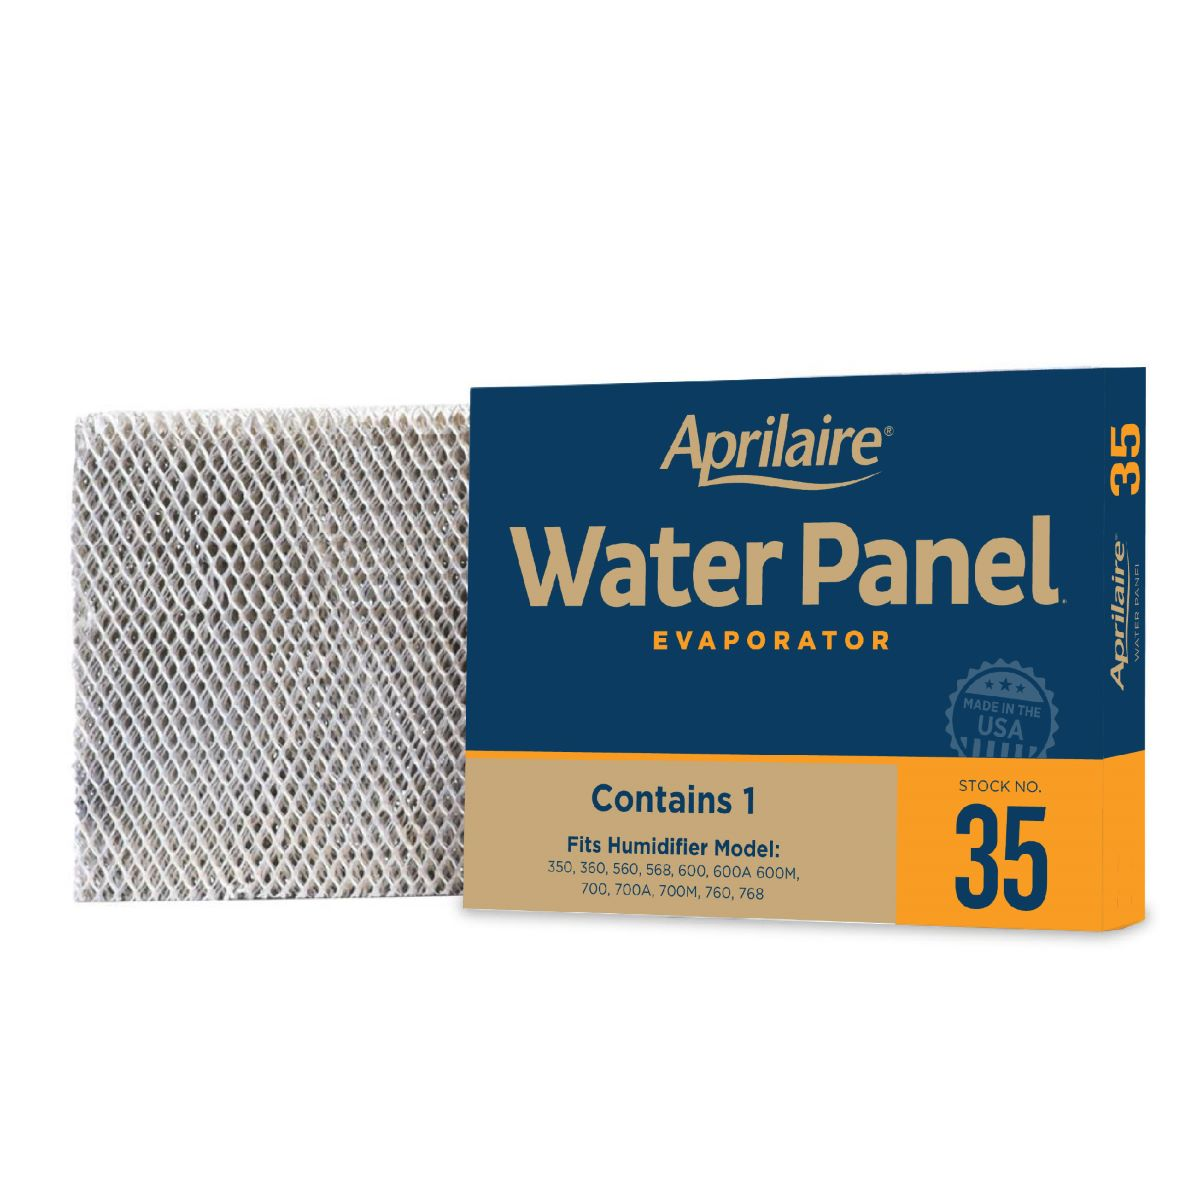 Aprilaire Water Panel